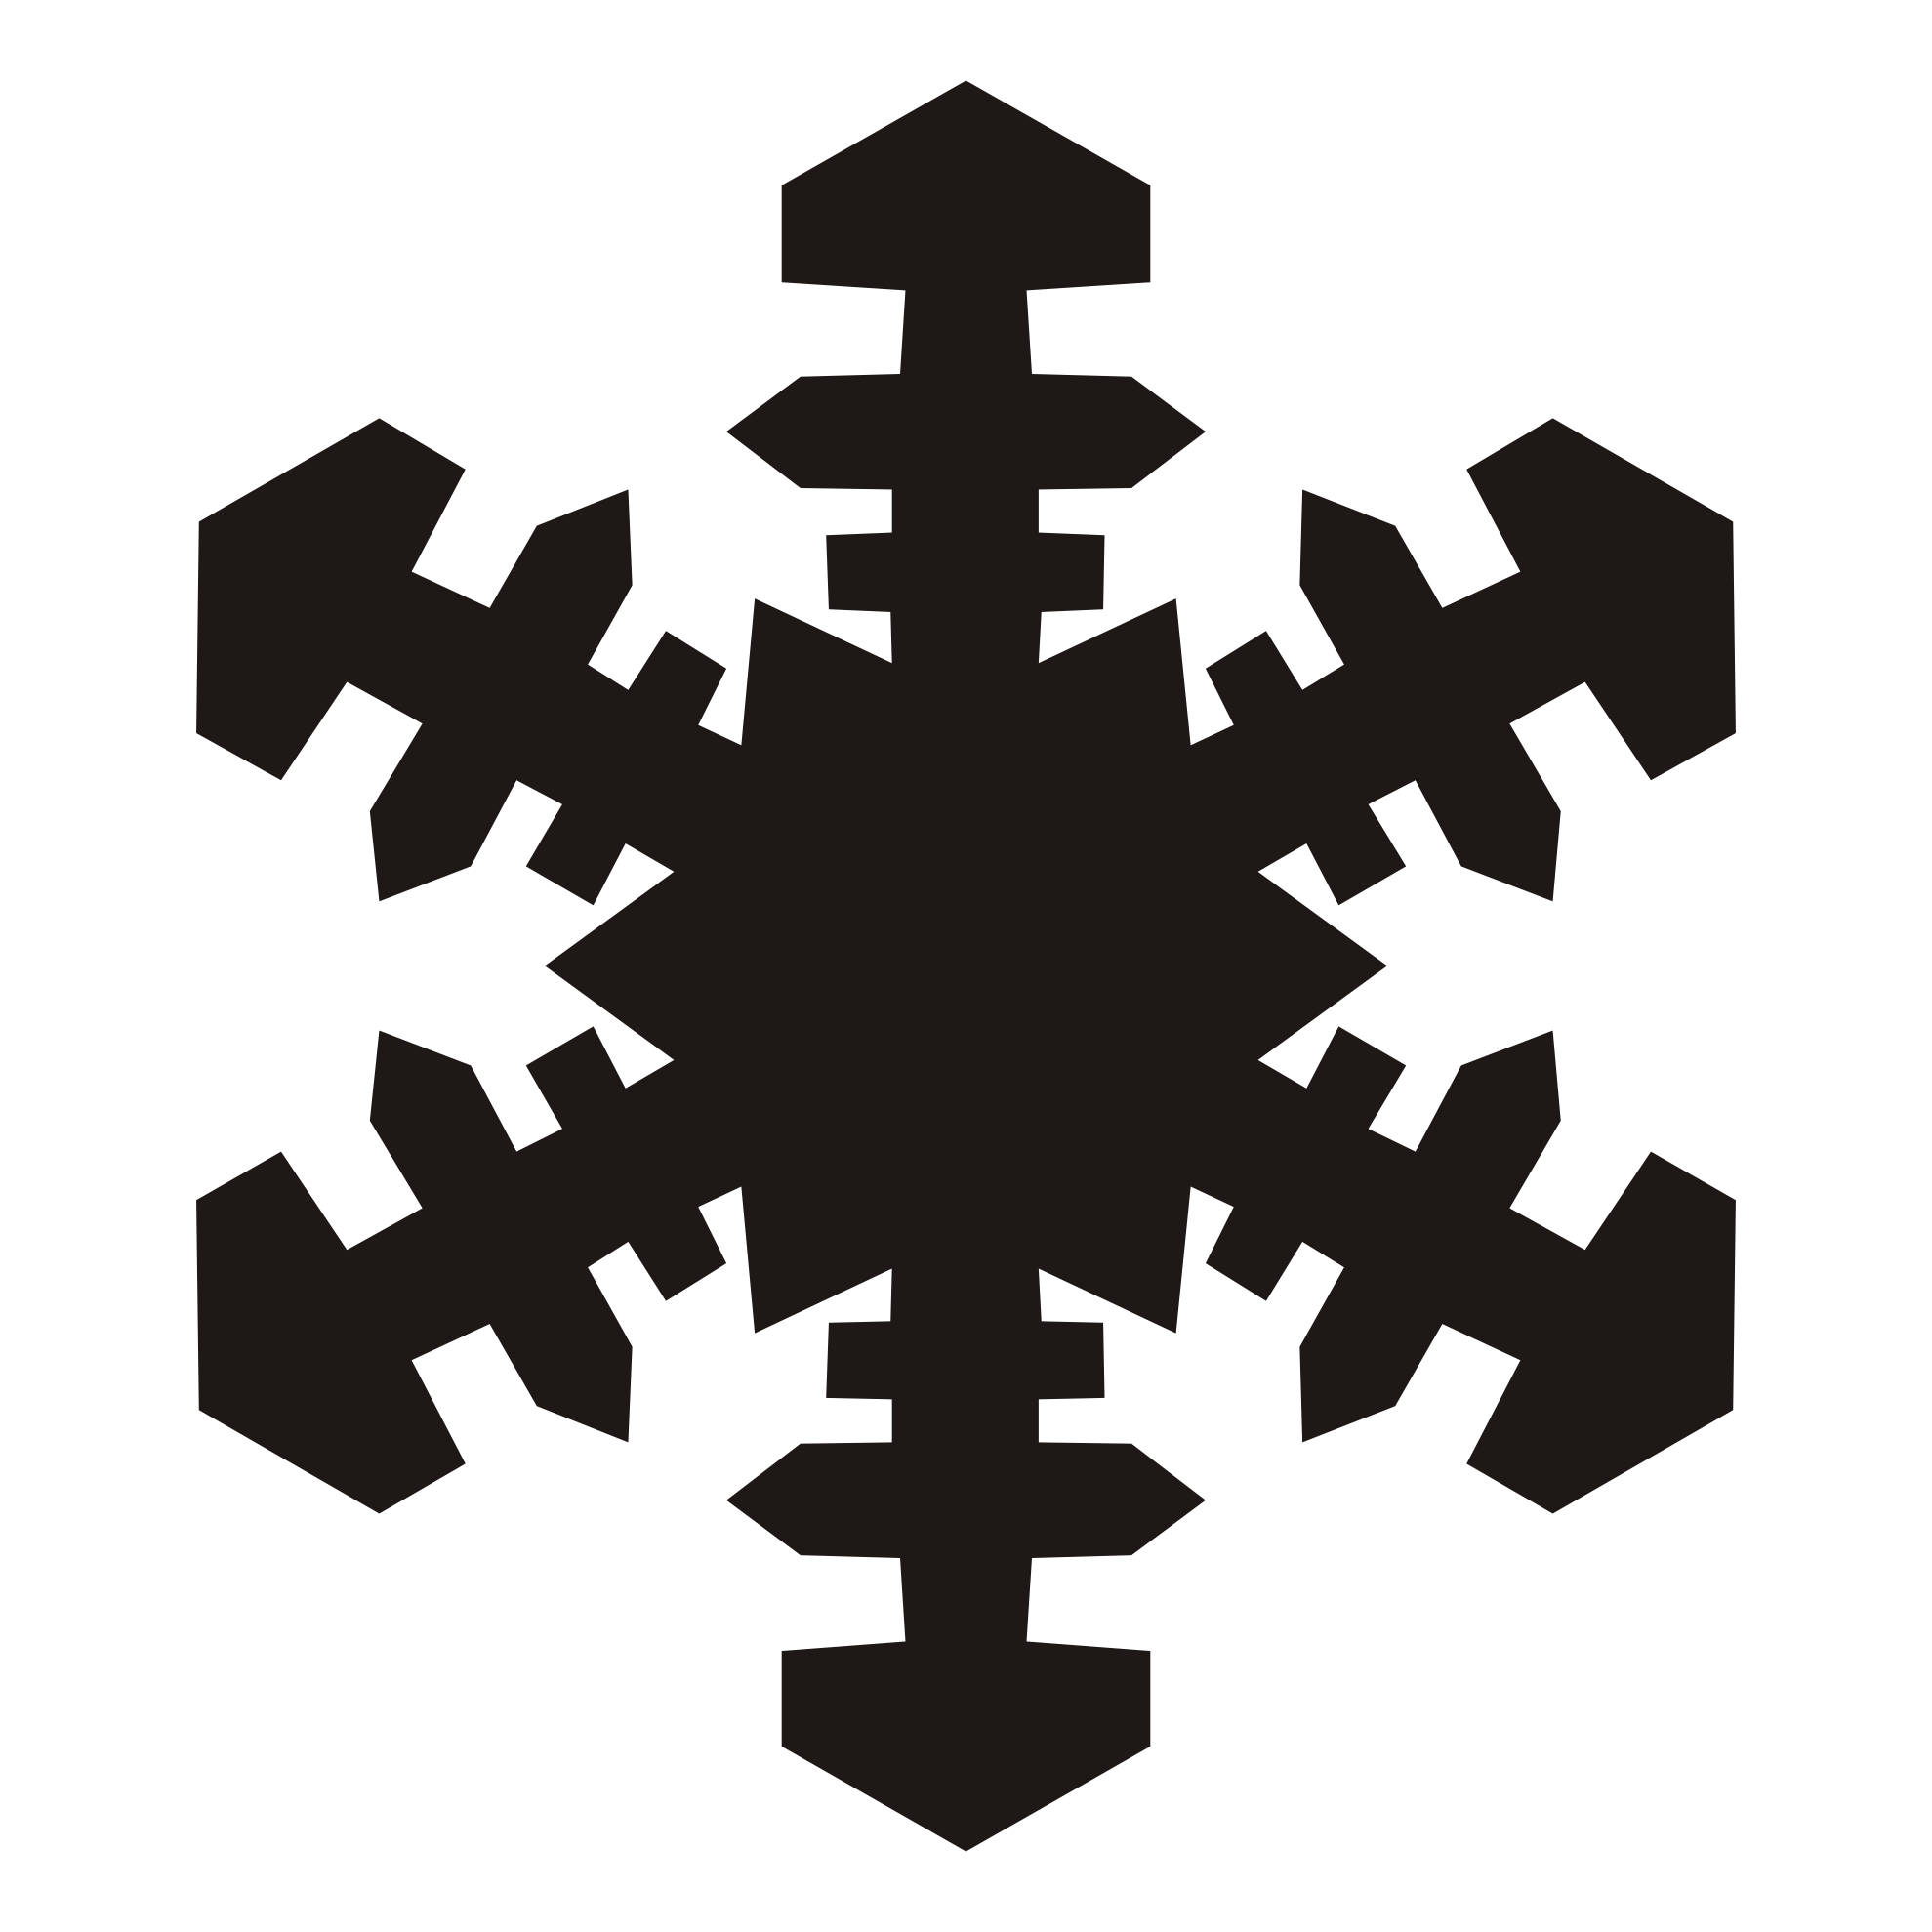 1979x1979 Snowflake Clipart Silhouette